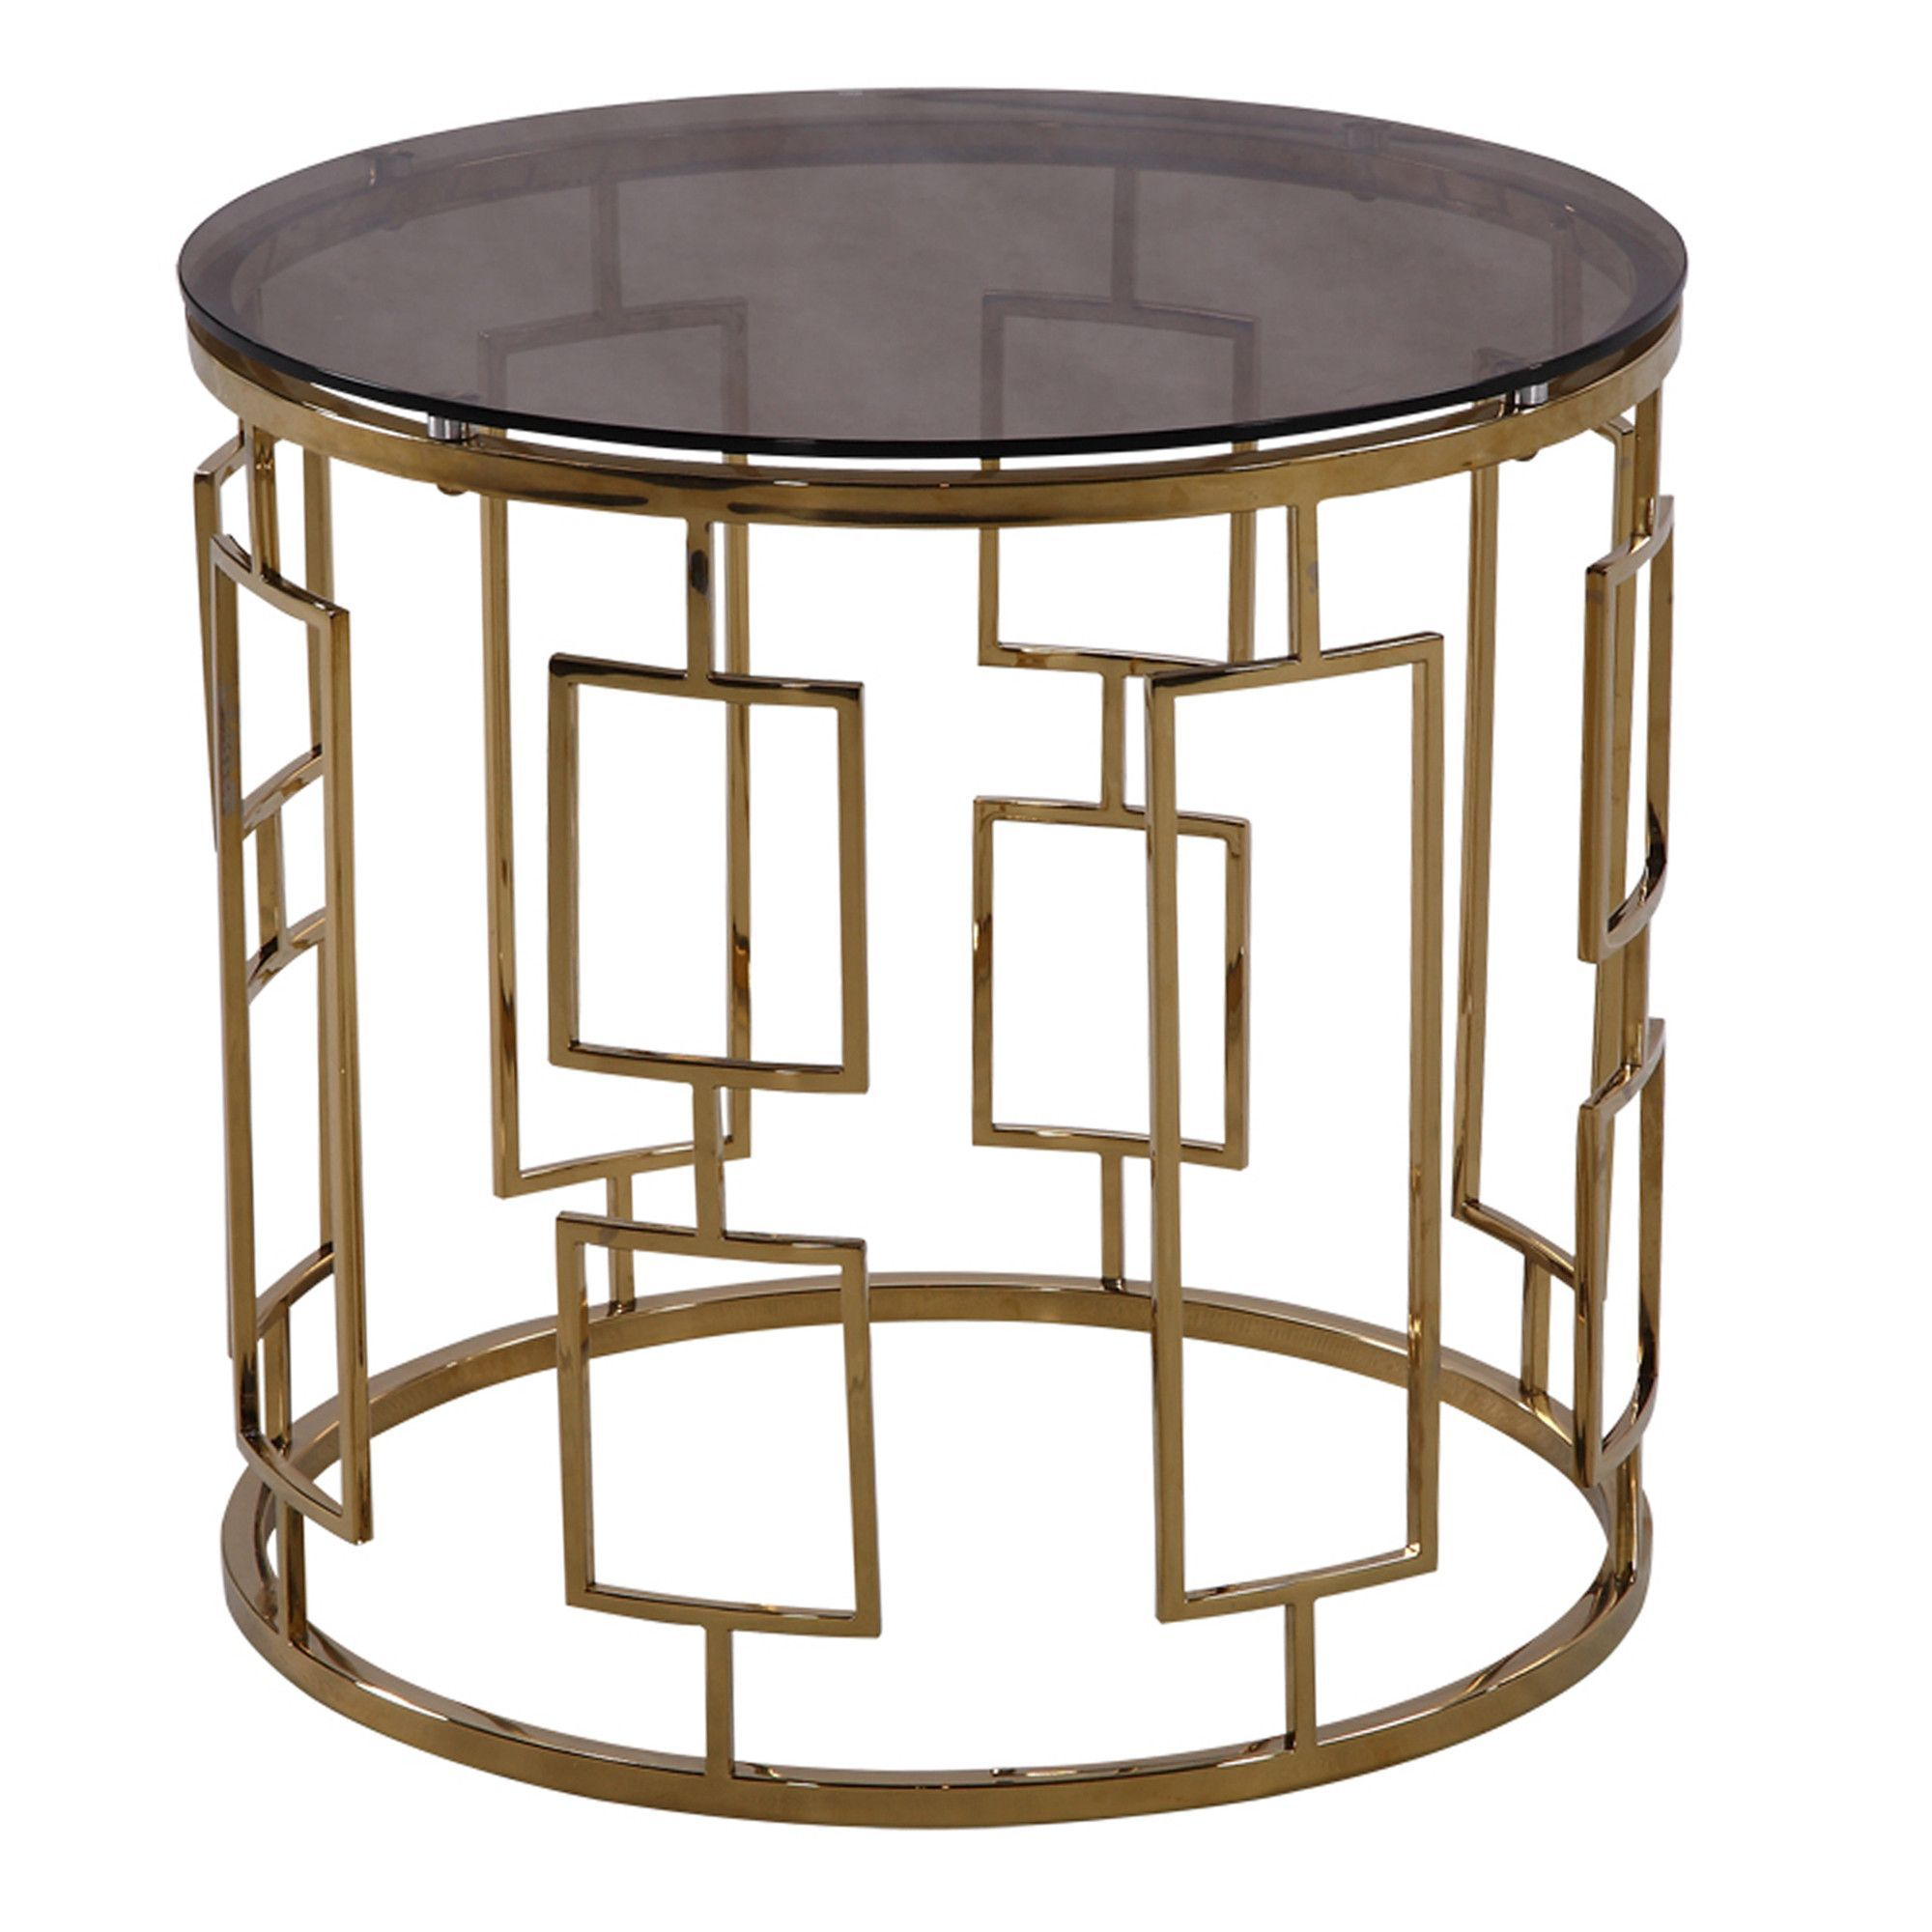 ARMEN LIVING Zinc Contemporary End Table In Shiny Gold With Smoked